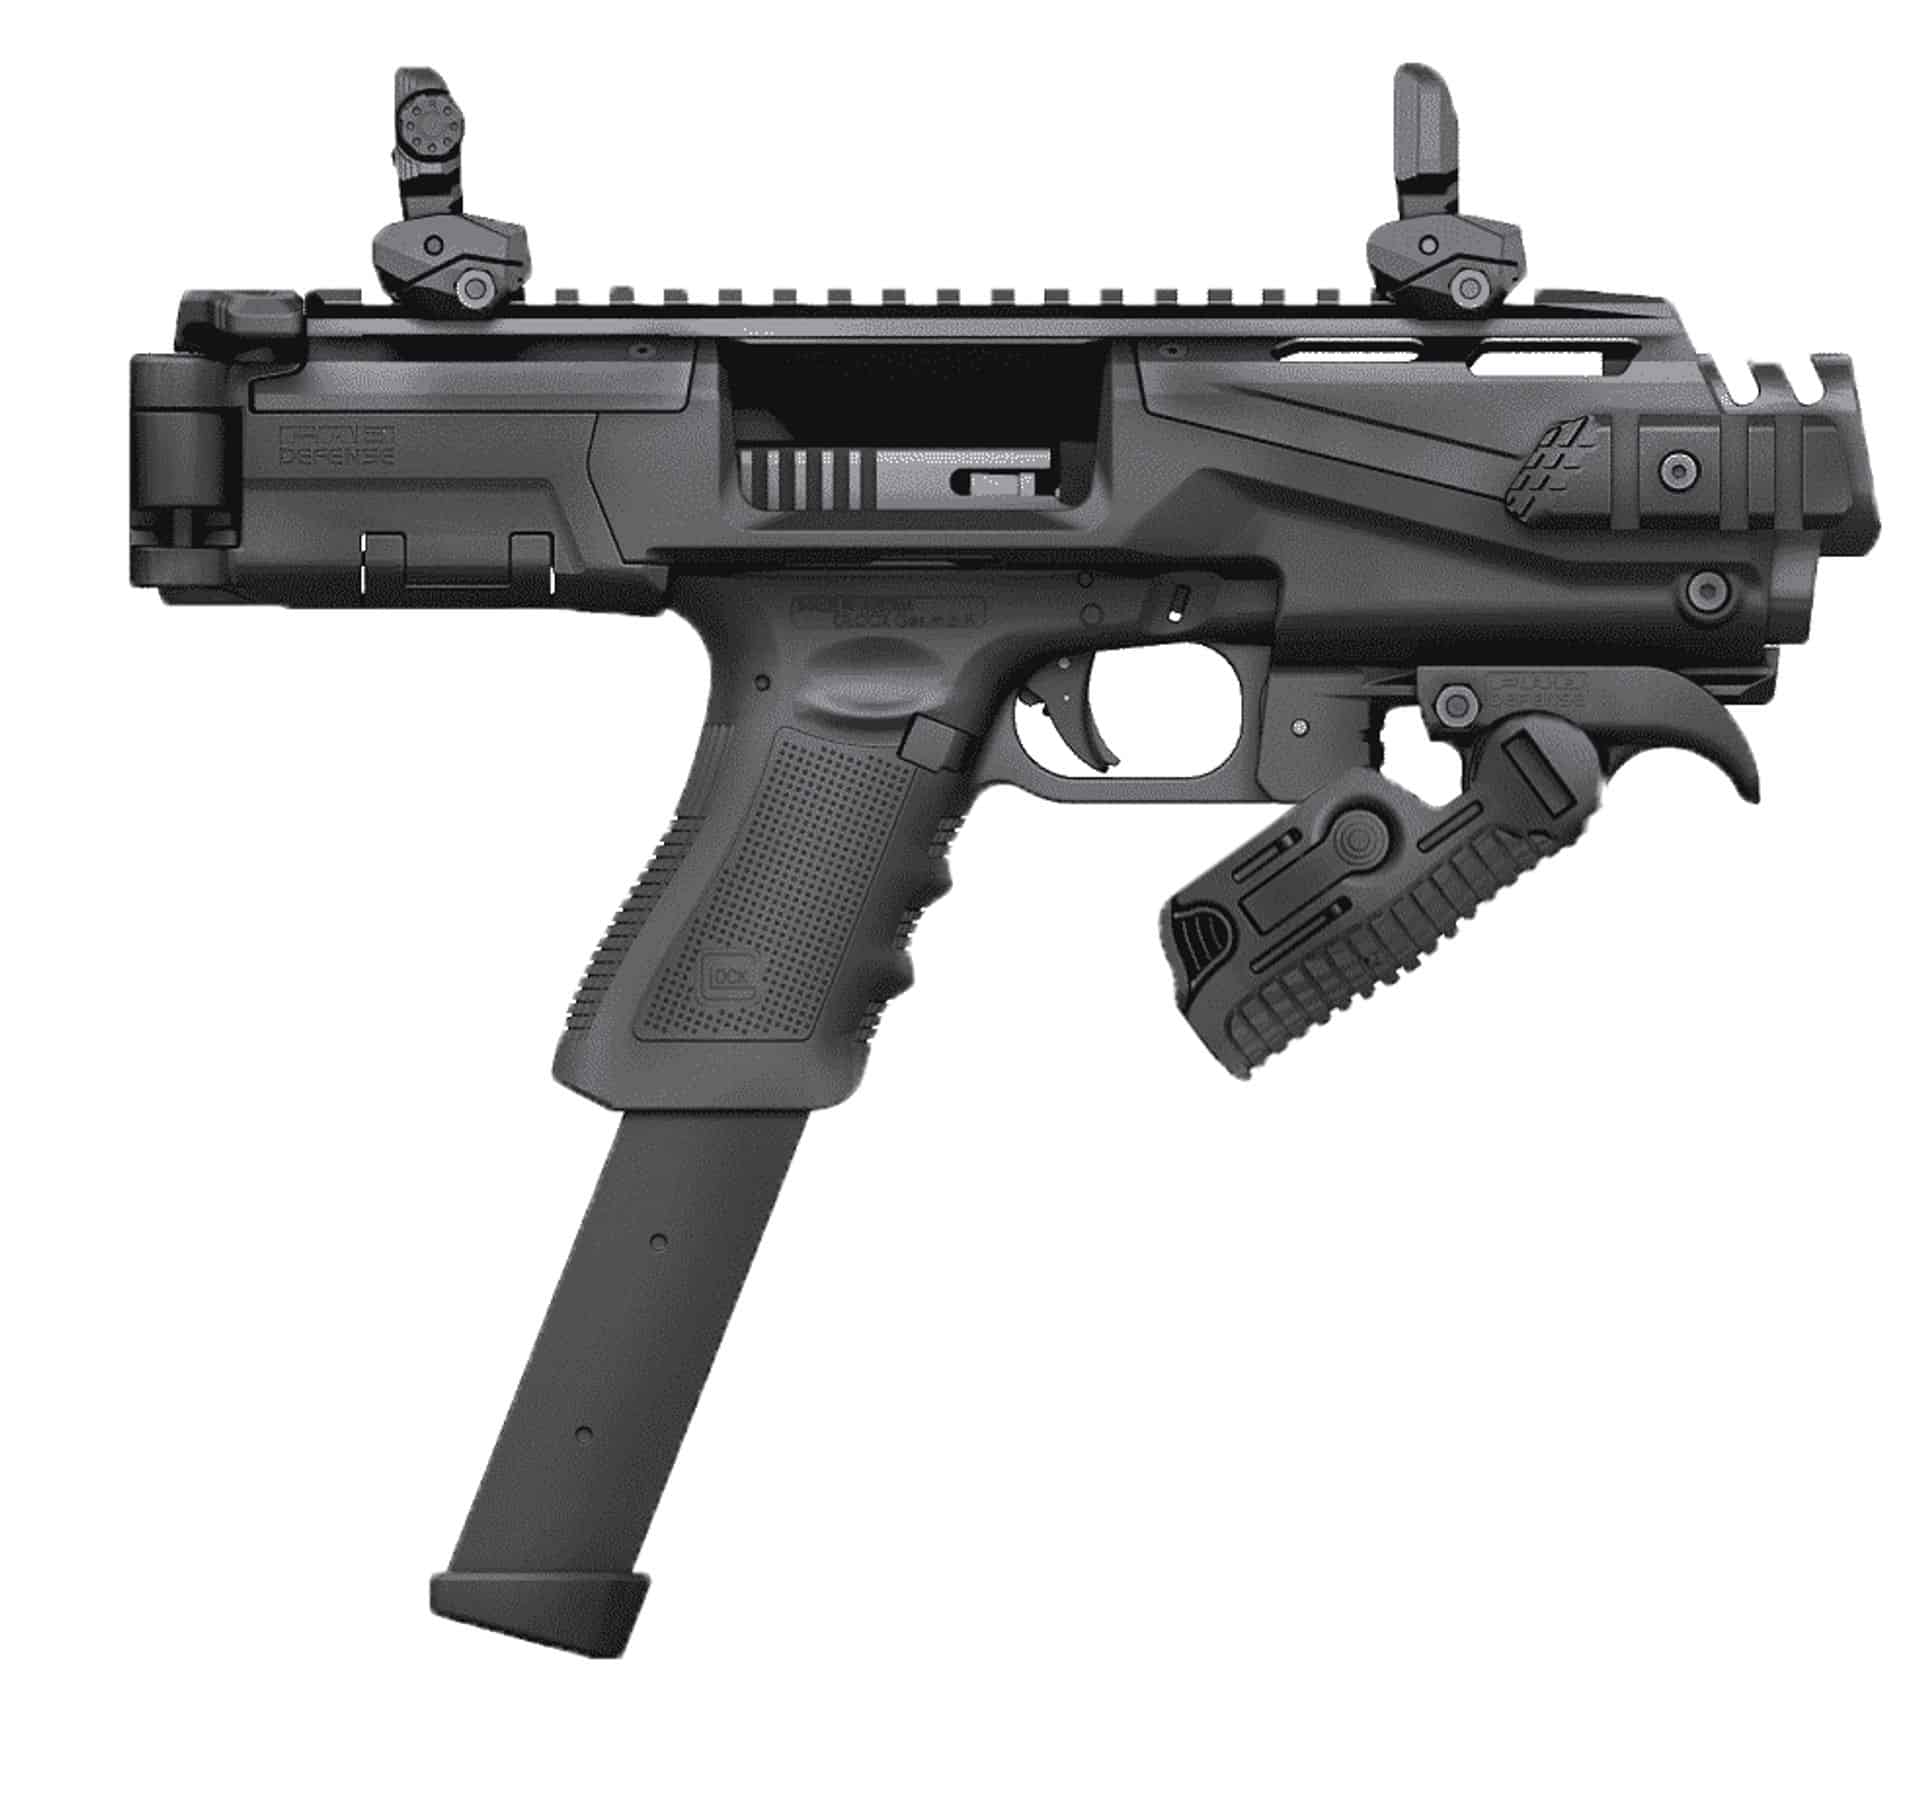 002BS-ZFI PDW Ultimate Truck Gun - NON NFA KPOS Scout w/ folding angled foregrip & safety